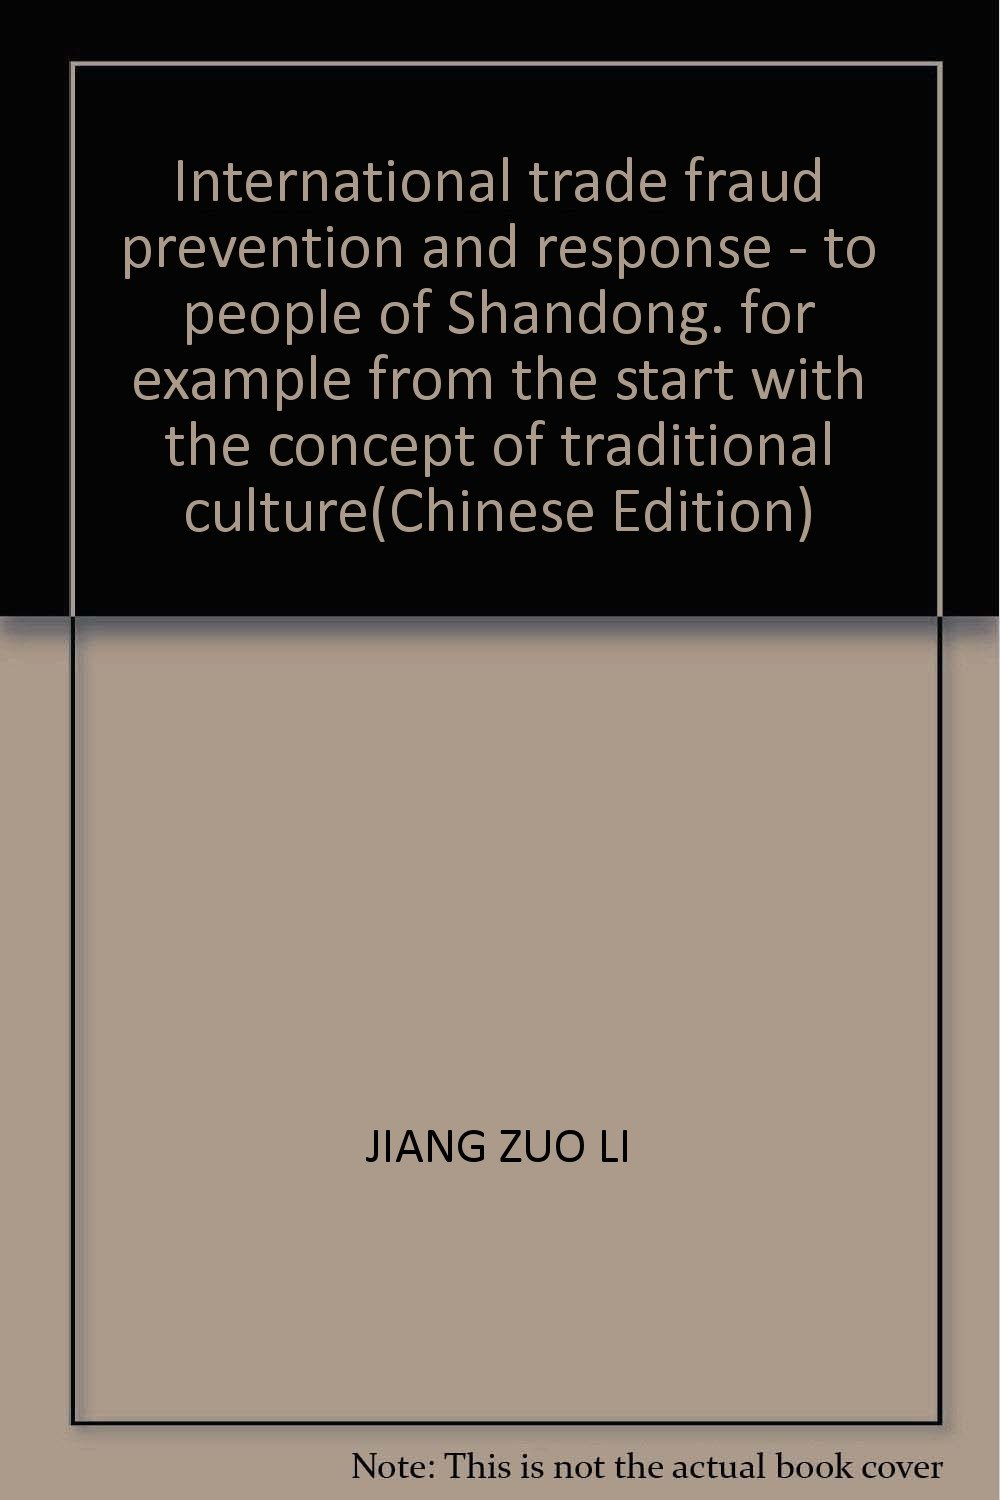 Download International trade fraud prevention and response - to people of Shandong, for example from the start with the concept of traditional culture ebook